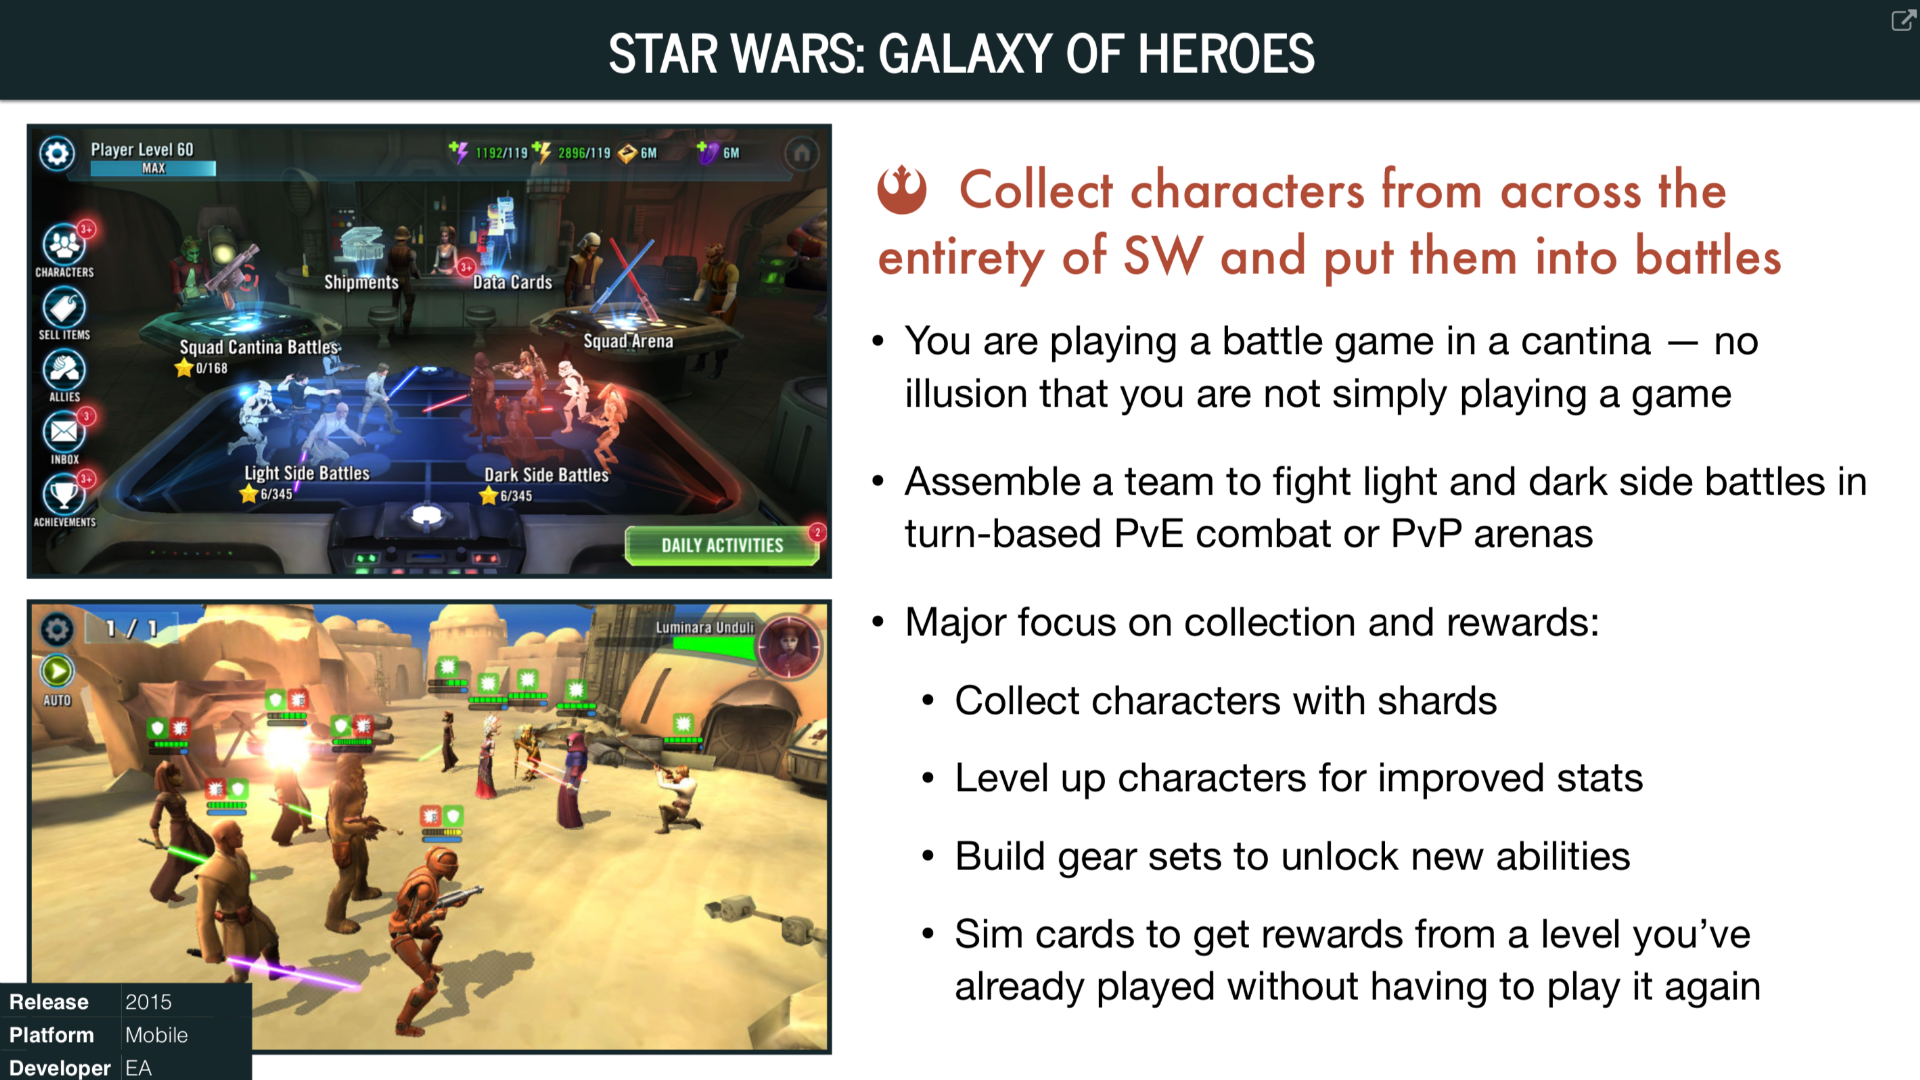 Overview of Star Wars: Galaxy of Heroes (2015)